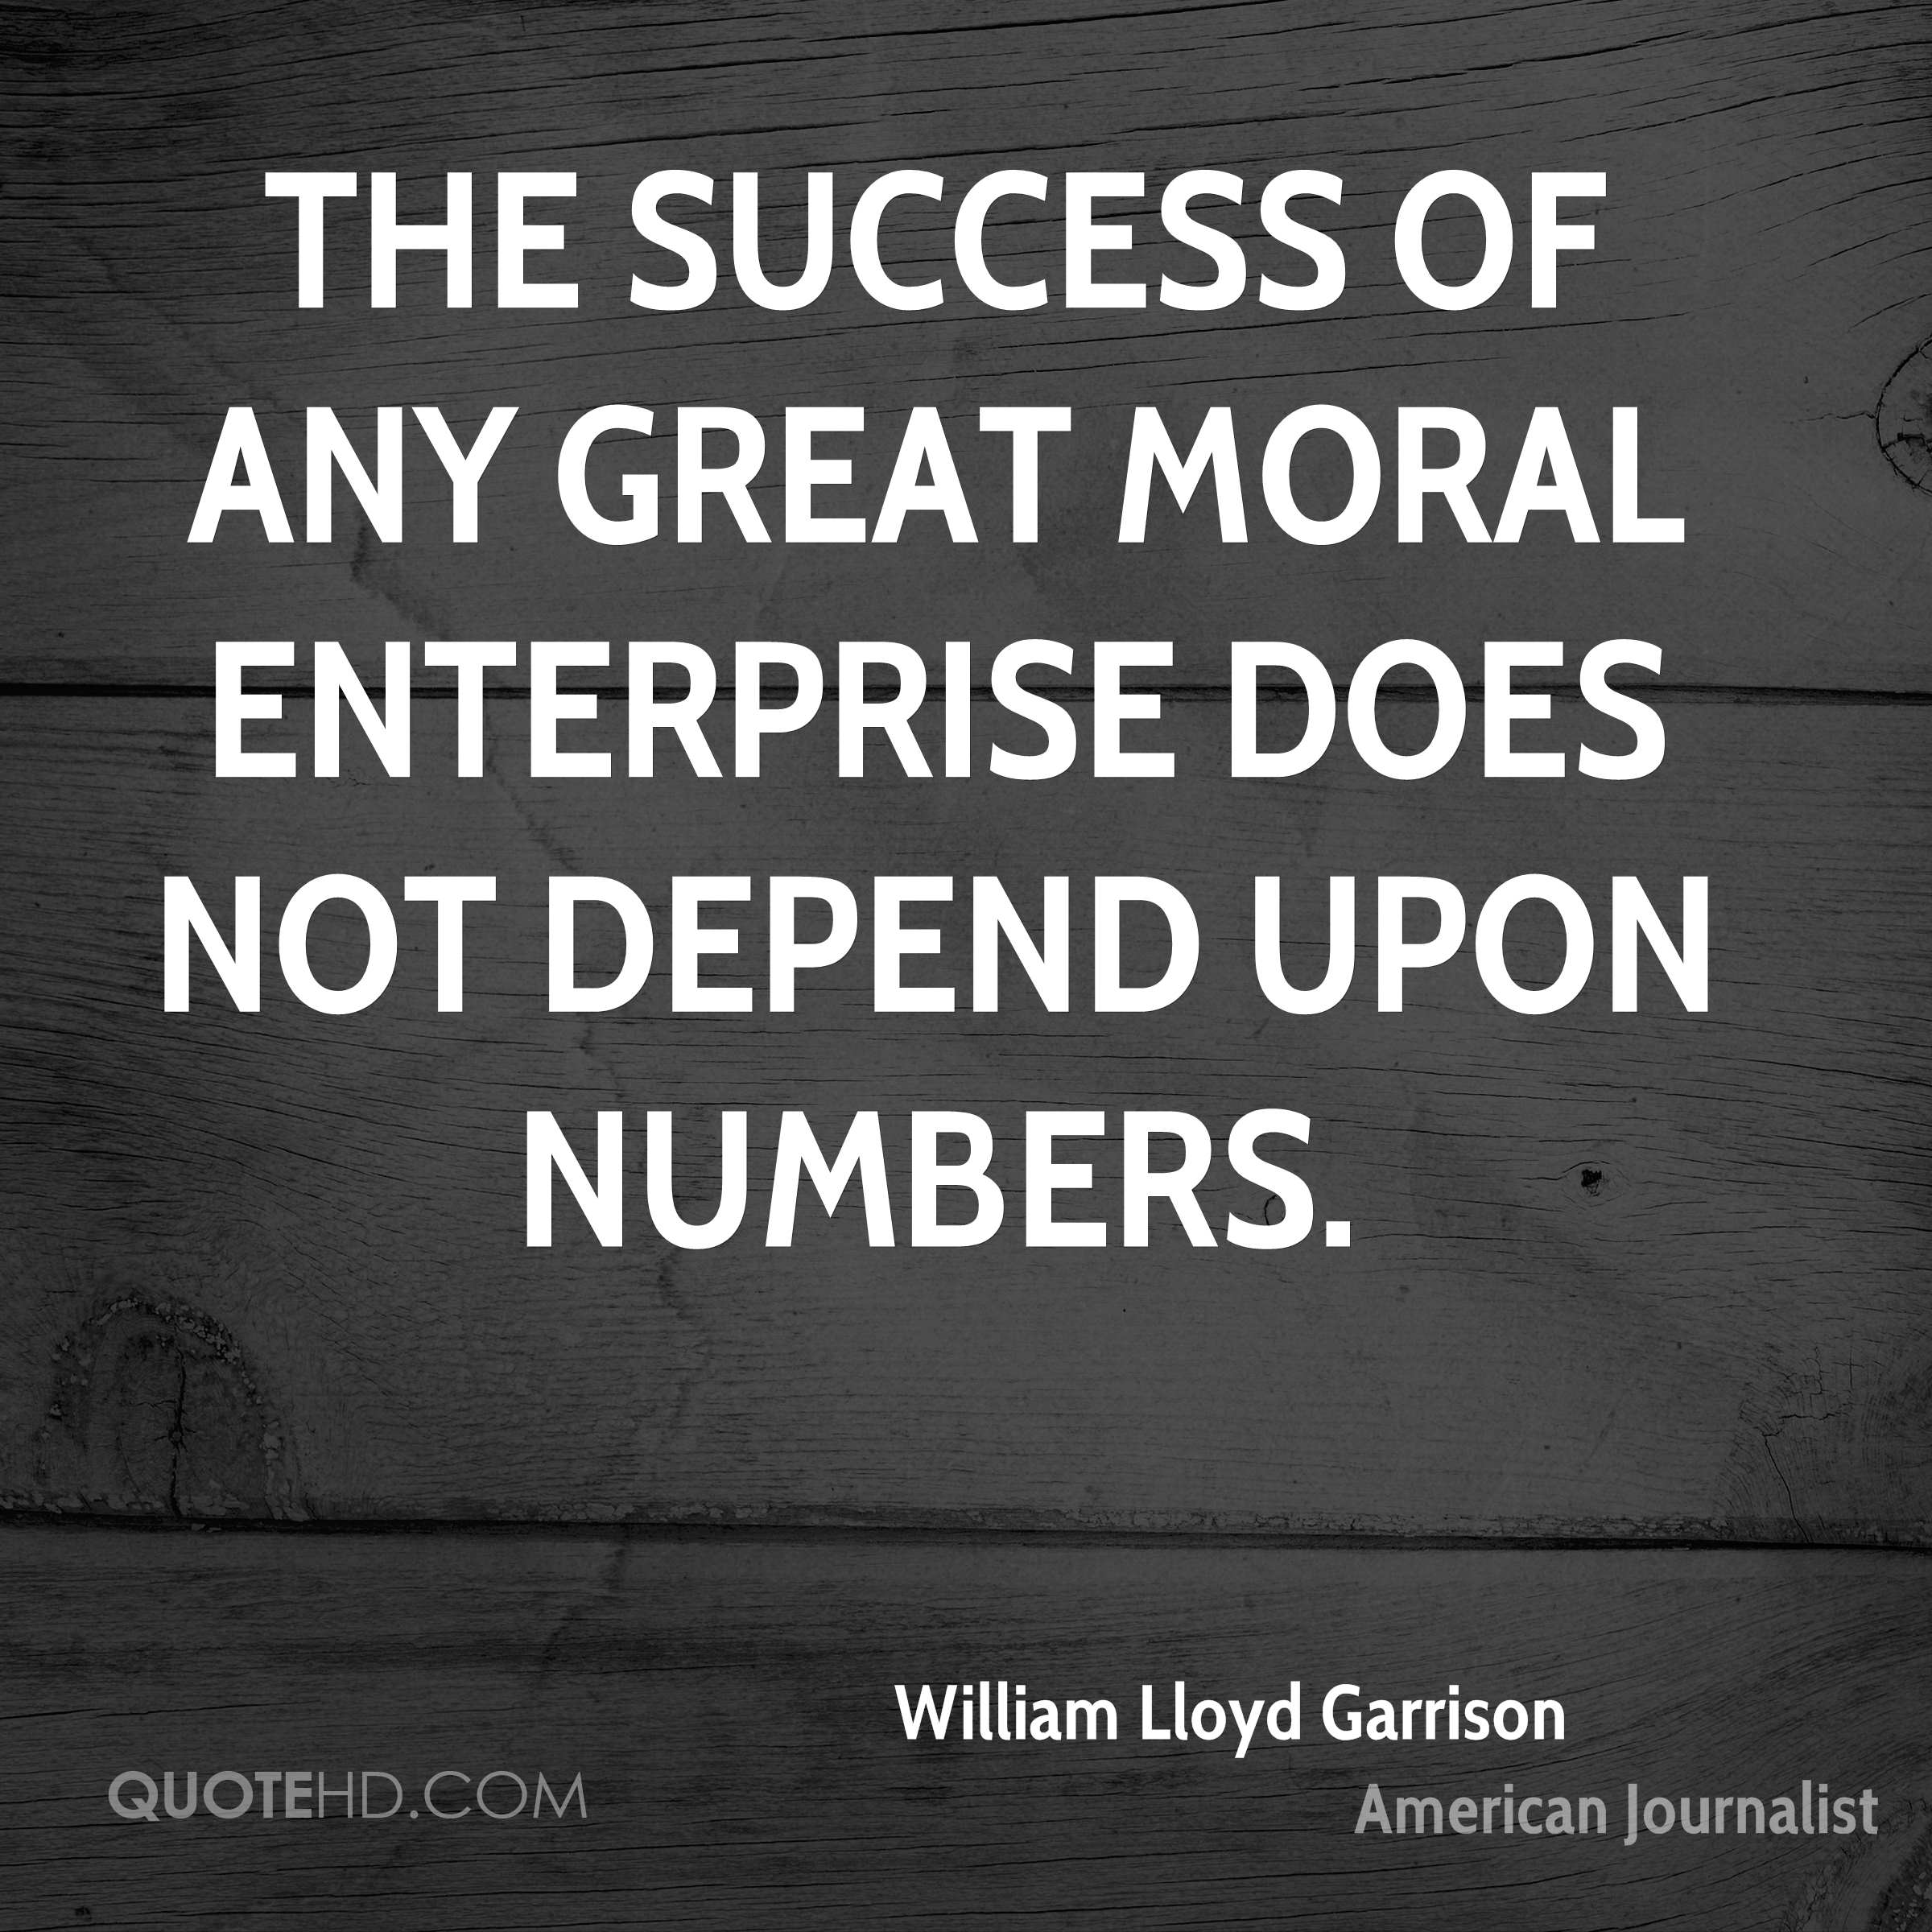 The success of any great moral enterprise does not depend upon numbers.